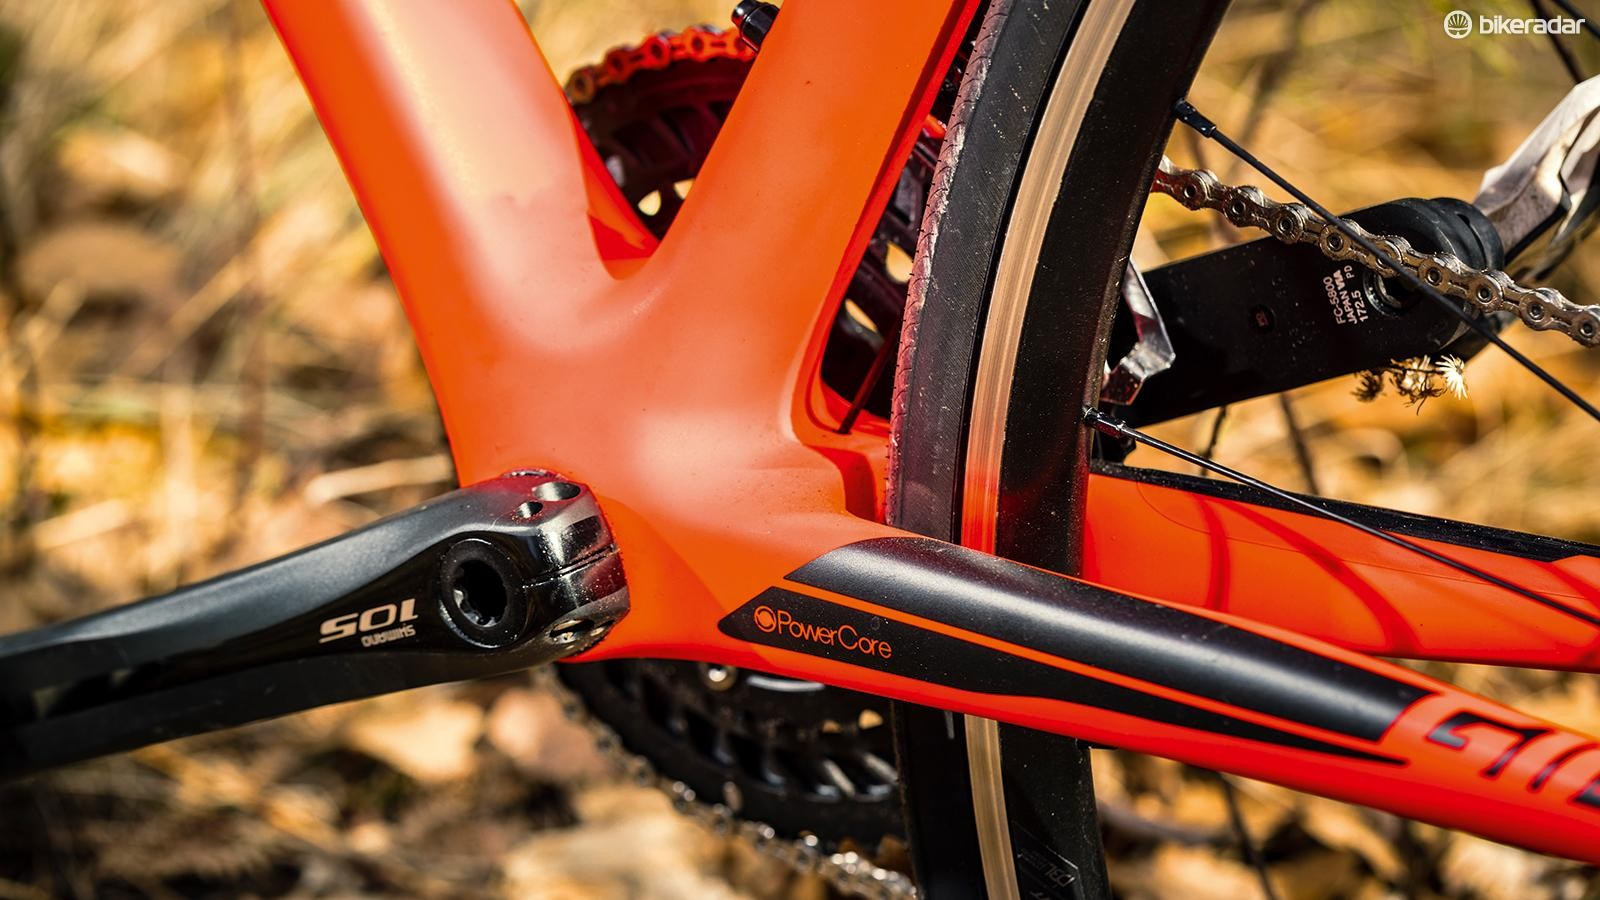 2750c23bf0e The broad bottom-bracket shell helps push power out